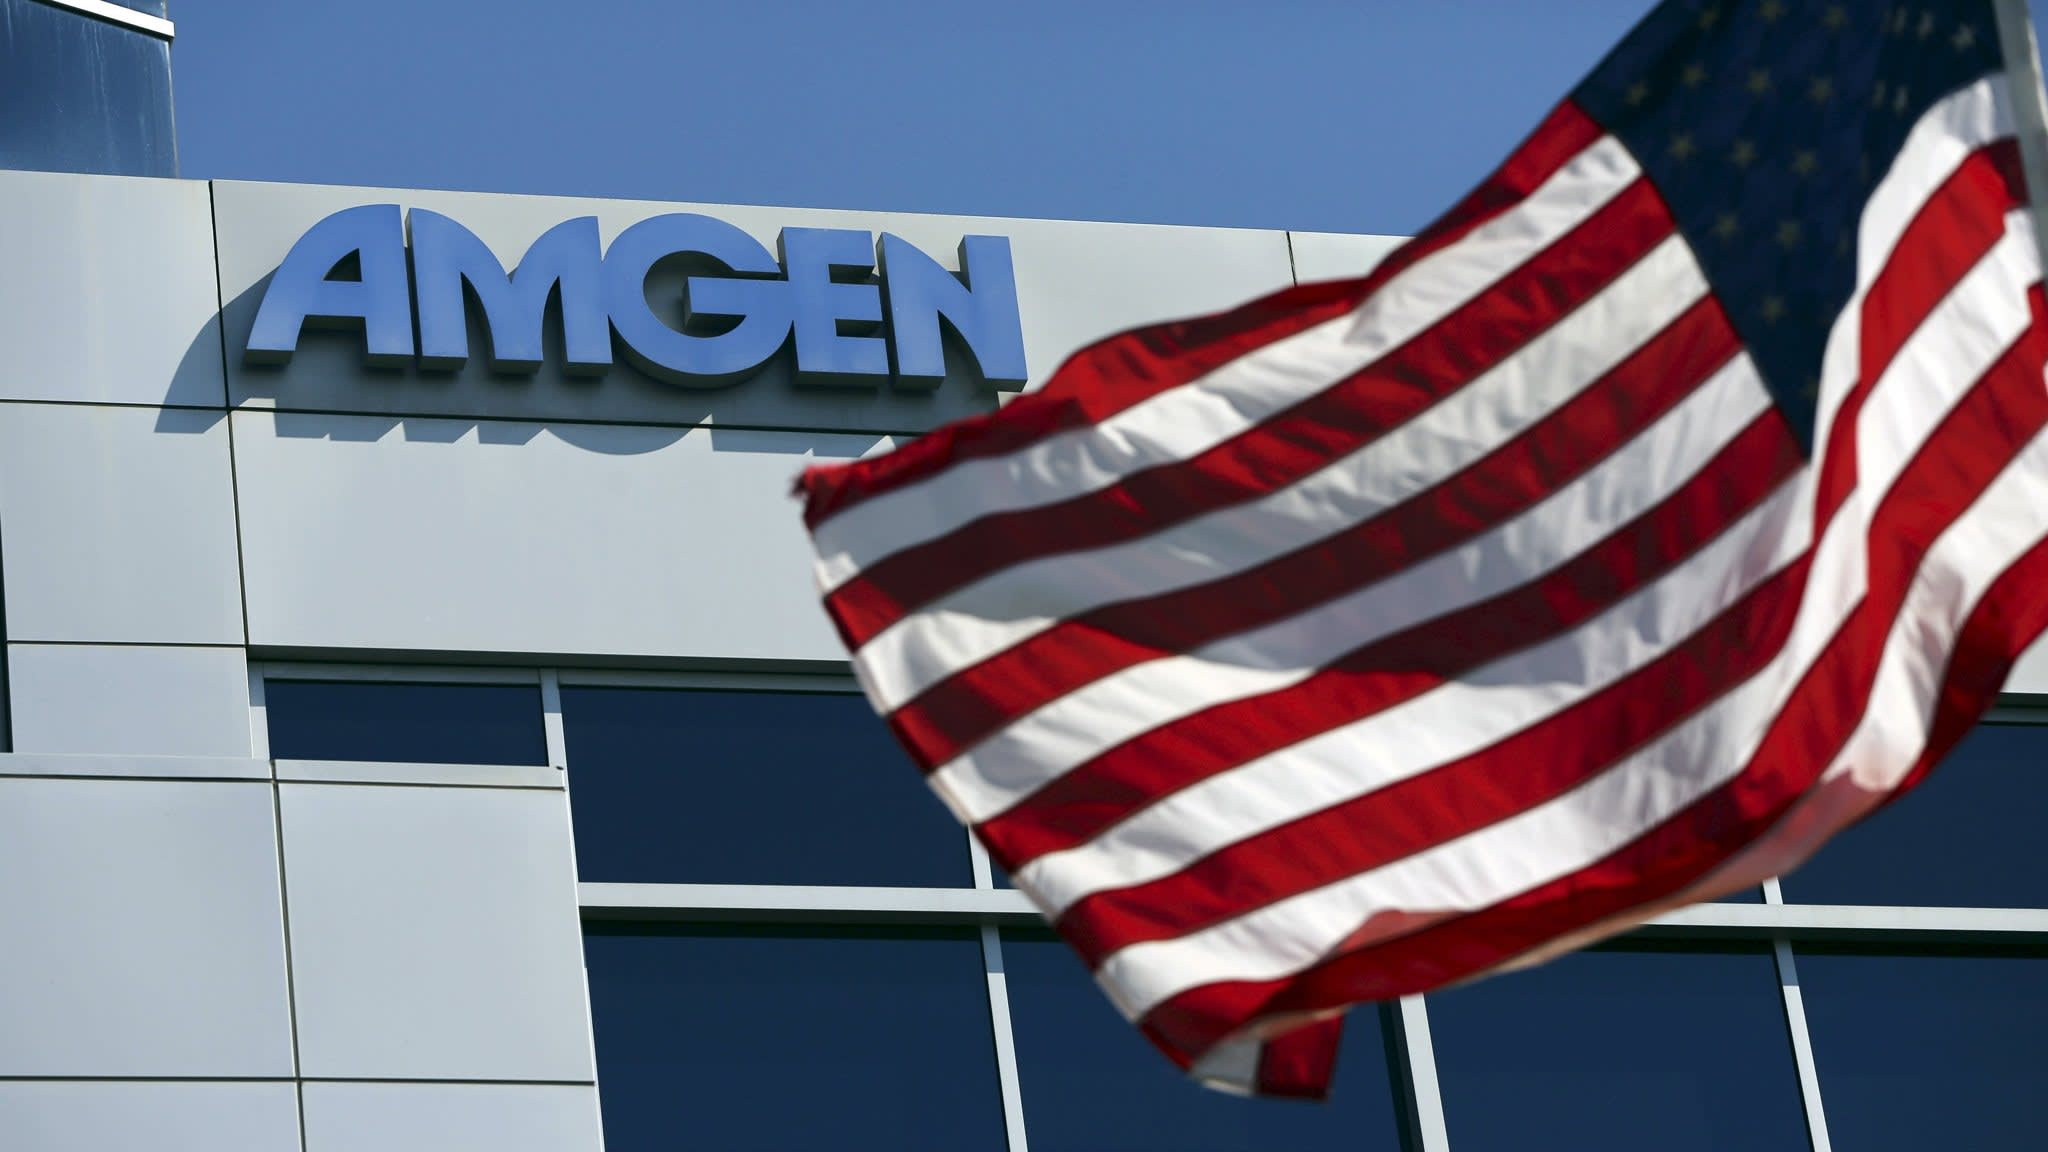 Amgen 'looking hard' at striking deals using $27bn cash pile